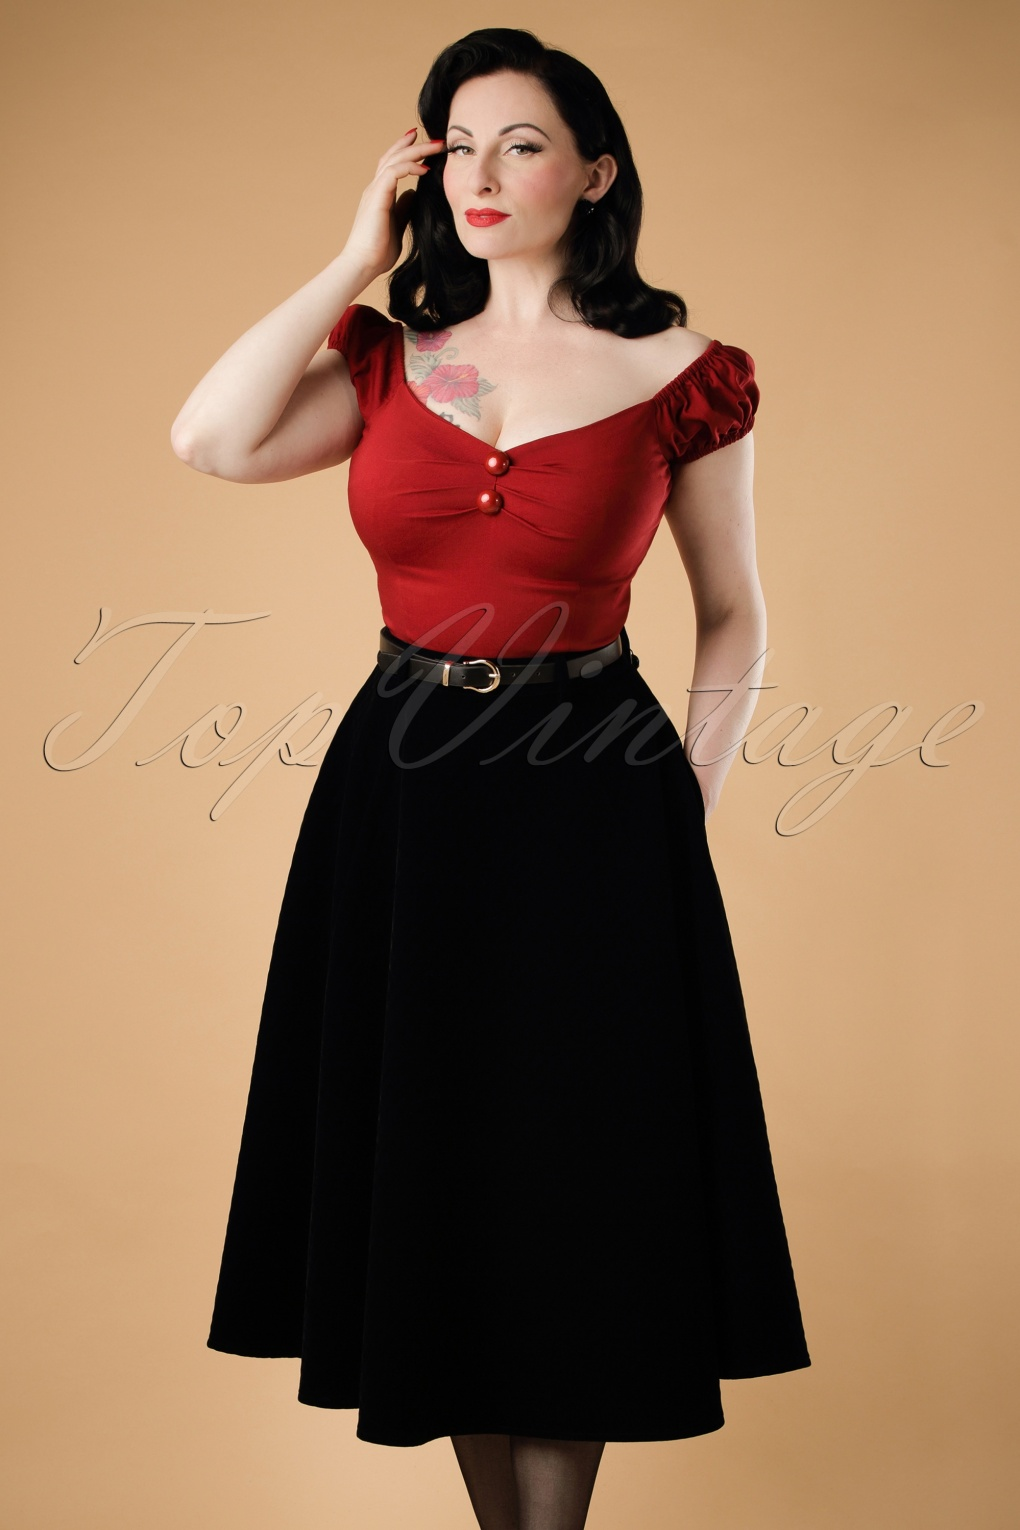 1940s Style Skirts- High Waist Vintage Skirts 40s Rosie Quilted Velvet Swing Skirt in Black £75.51 AT vintagedancer.com